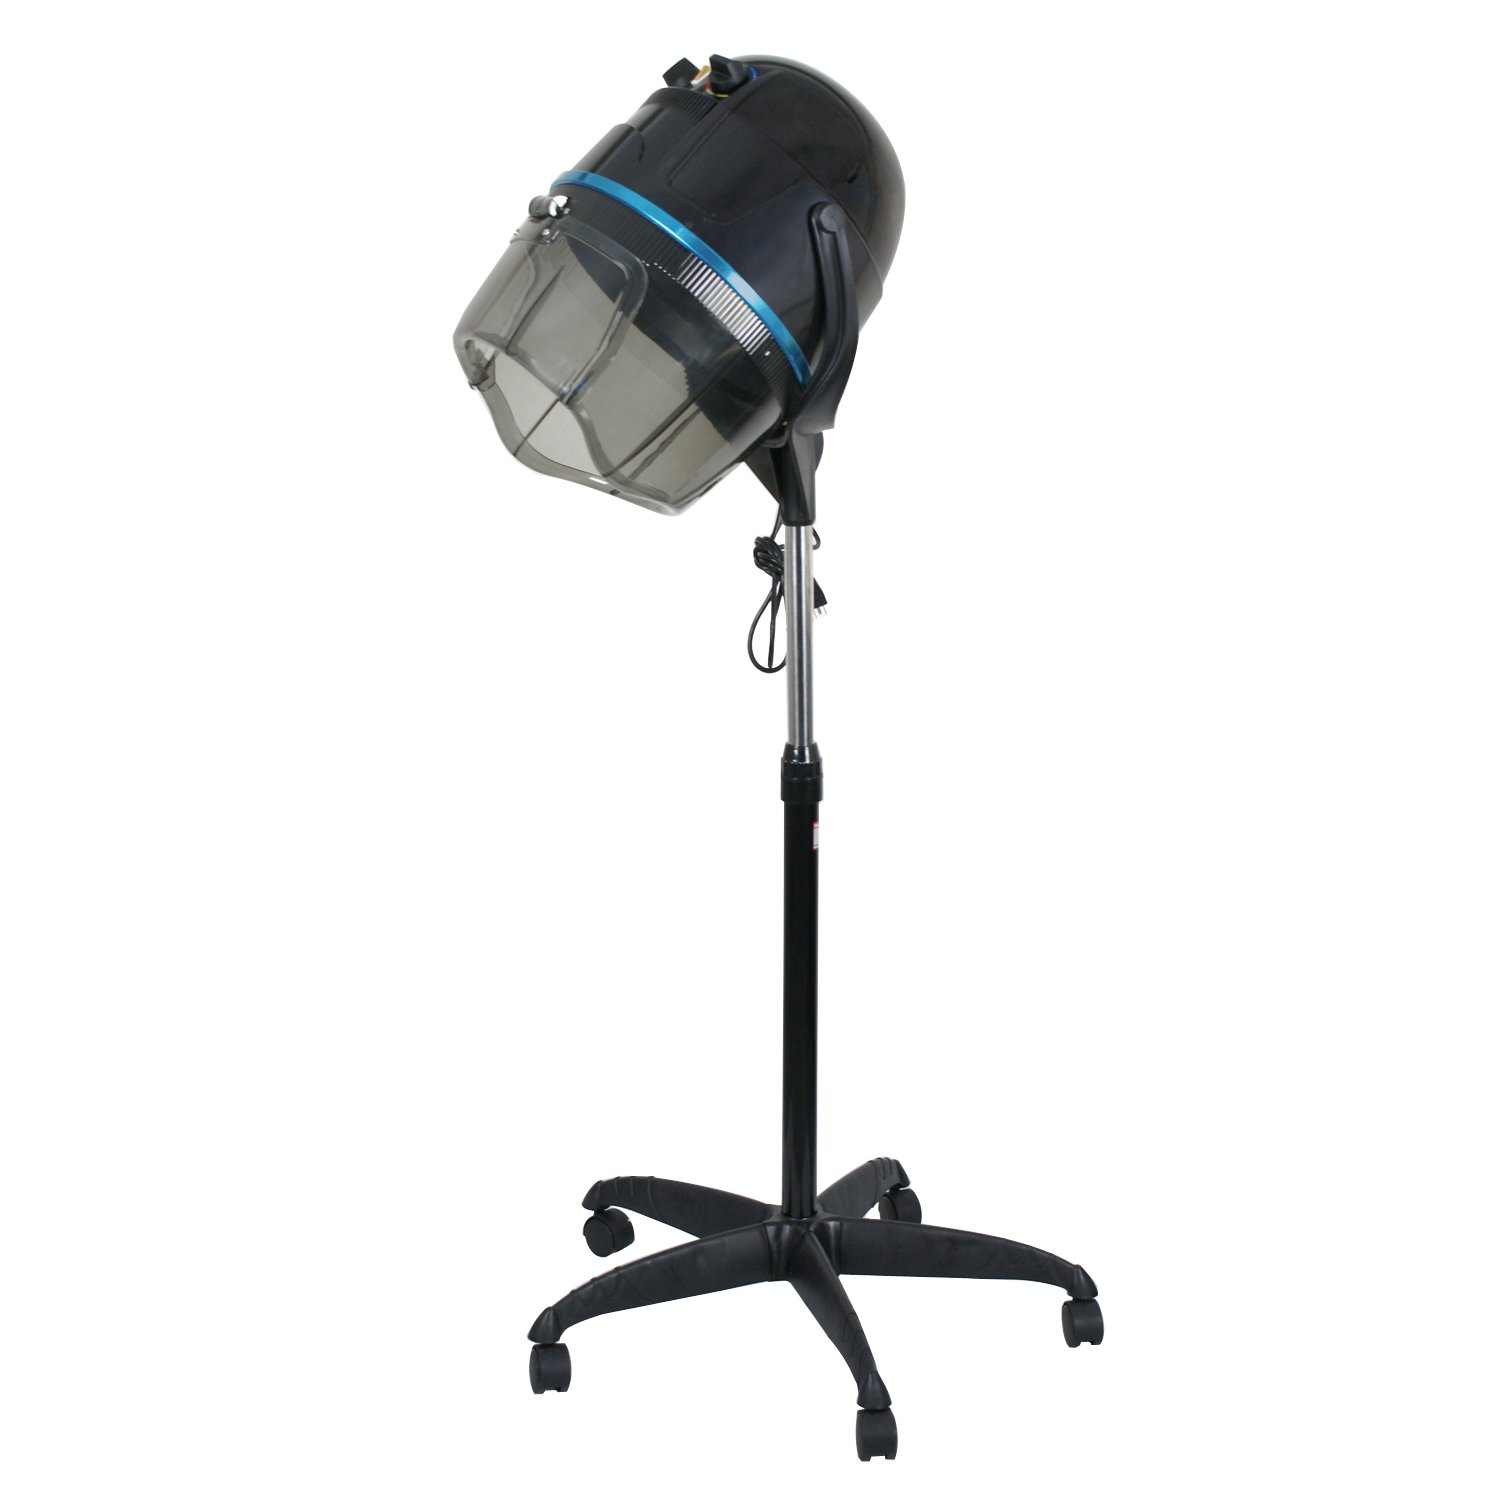 Professional 1300W Adjustable Hooded Floor Hair Bonnet Dryer Stand Up Rolling Base with Wheels Salon Equipment